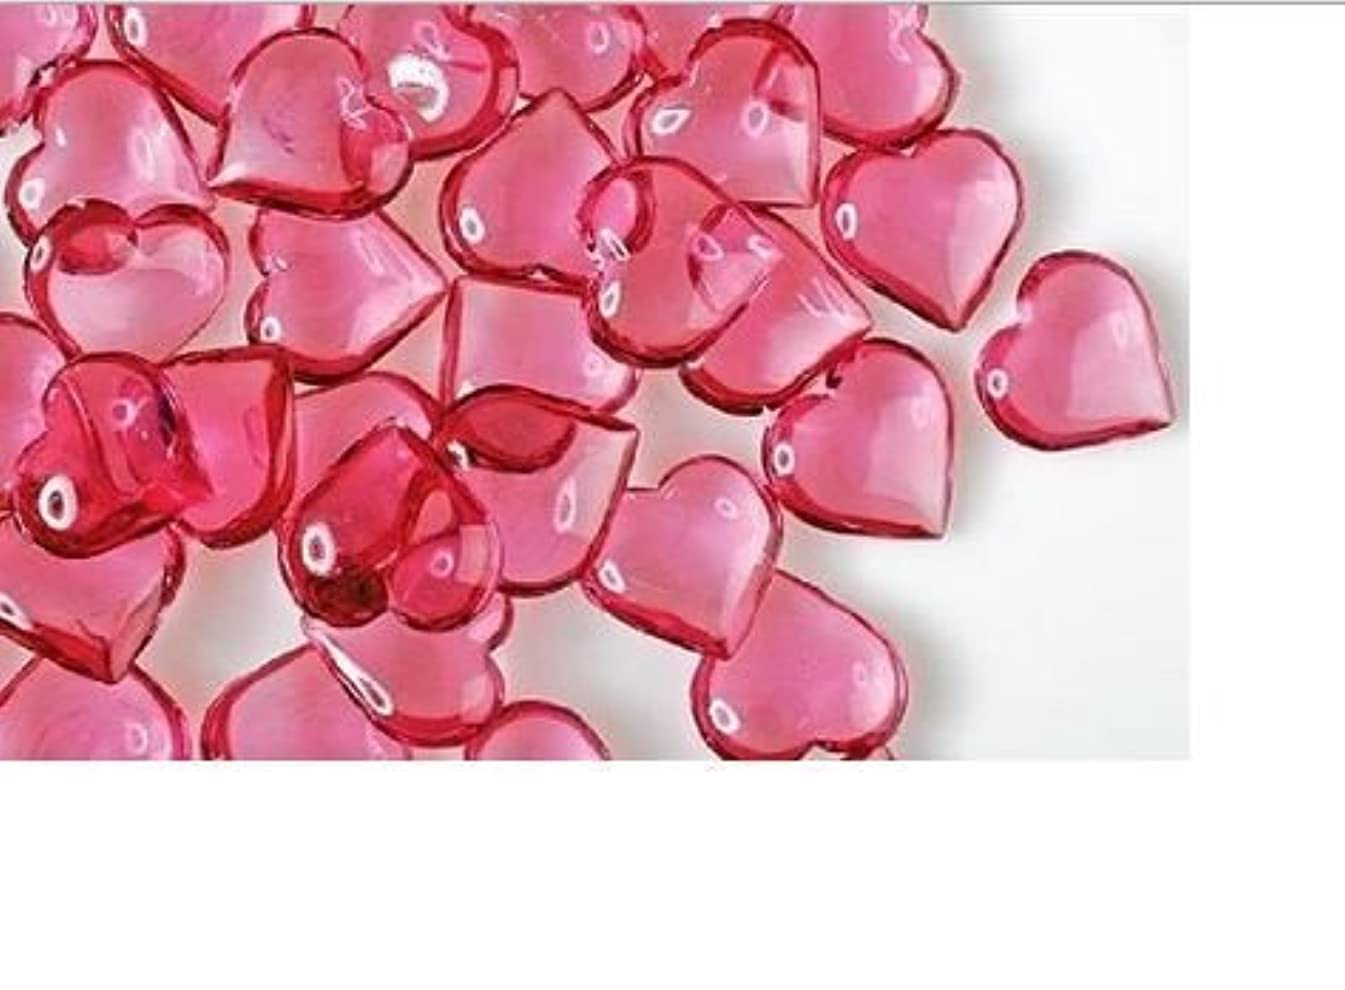 Valentine's Day Gifts & Decorations (Heart-Shaped Plastic Gems) Acrylic Hearts for Vase Fillers, Table Scatter, or Decoration PINK